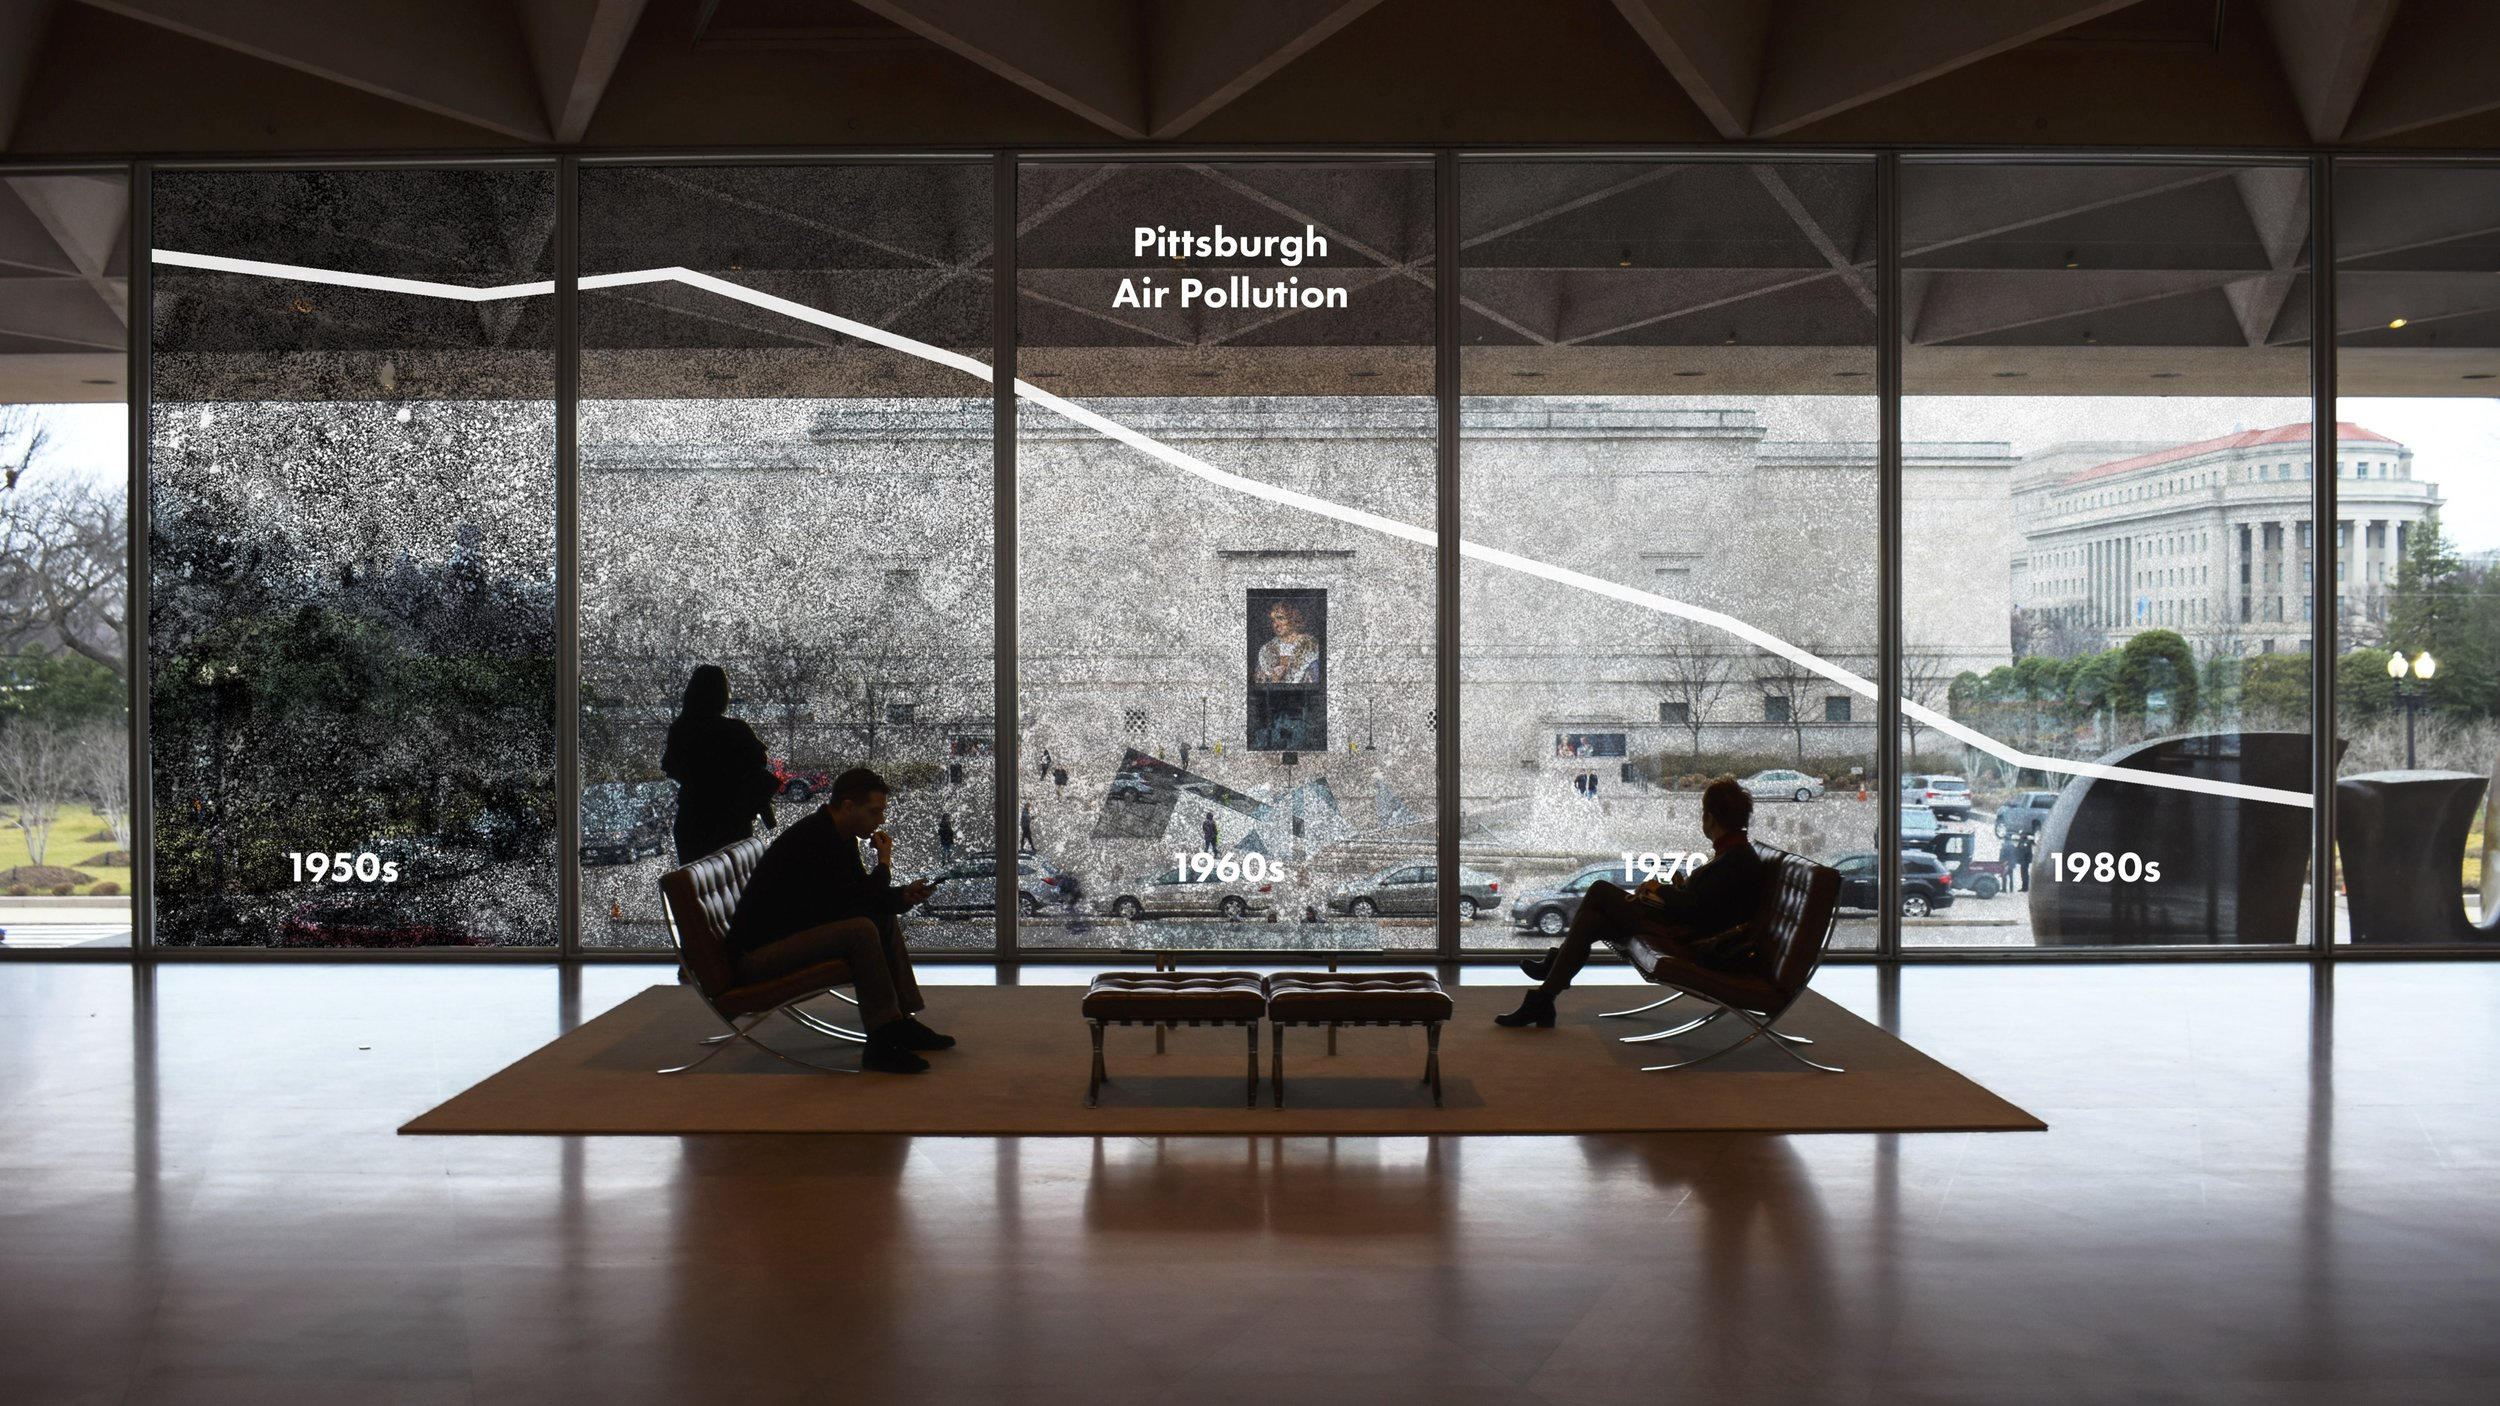 This rendering depicts the ideal installation of our proposed in-school installation. This window vinyl represents air quality at a 10x scale, allowing viewers to stand in different decades and observe what the air quality would have been like at that time.